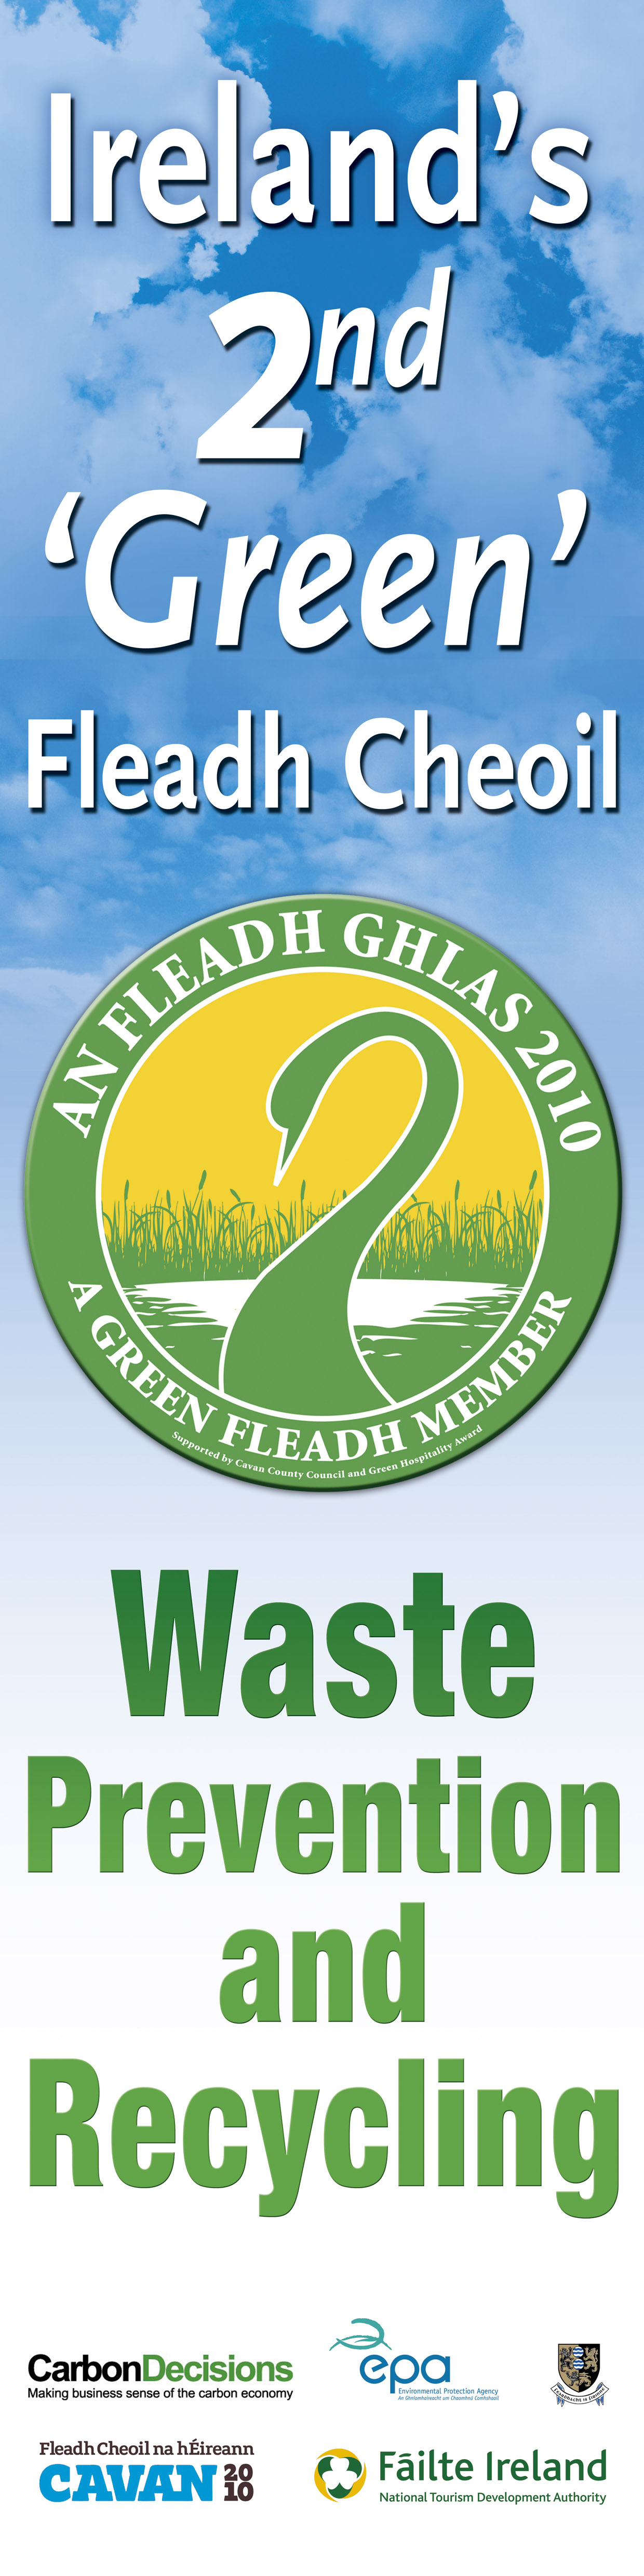 Cavan_Green_Fleadh_WastePrevention_Banner_300x1200-42